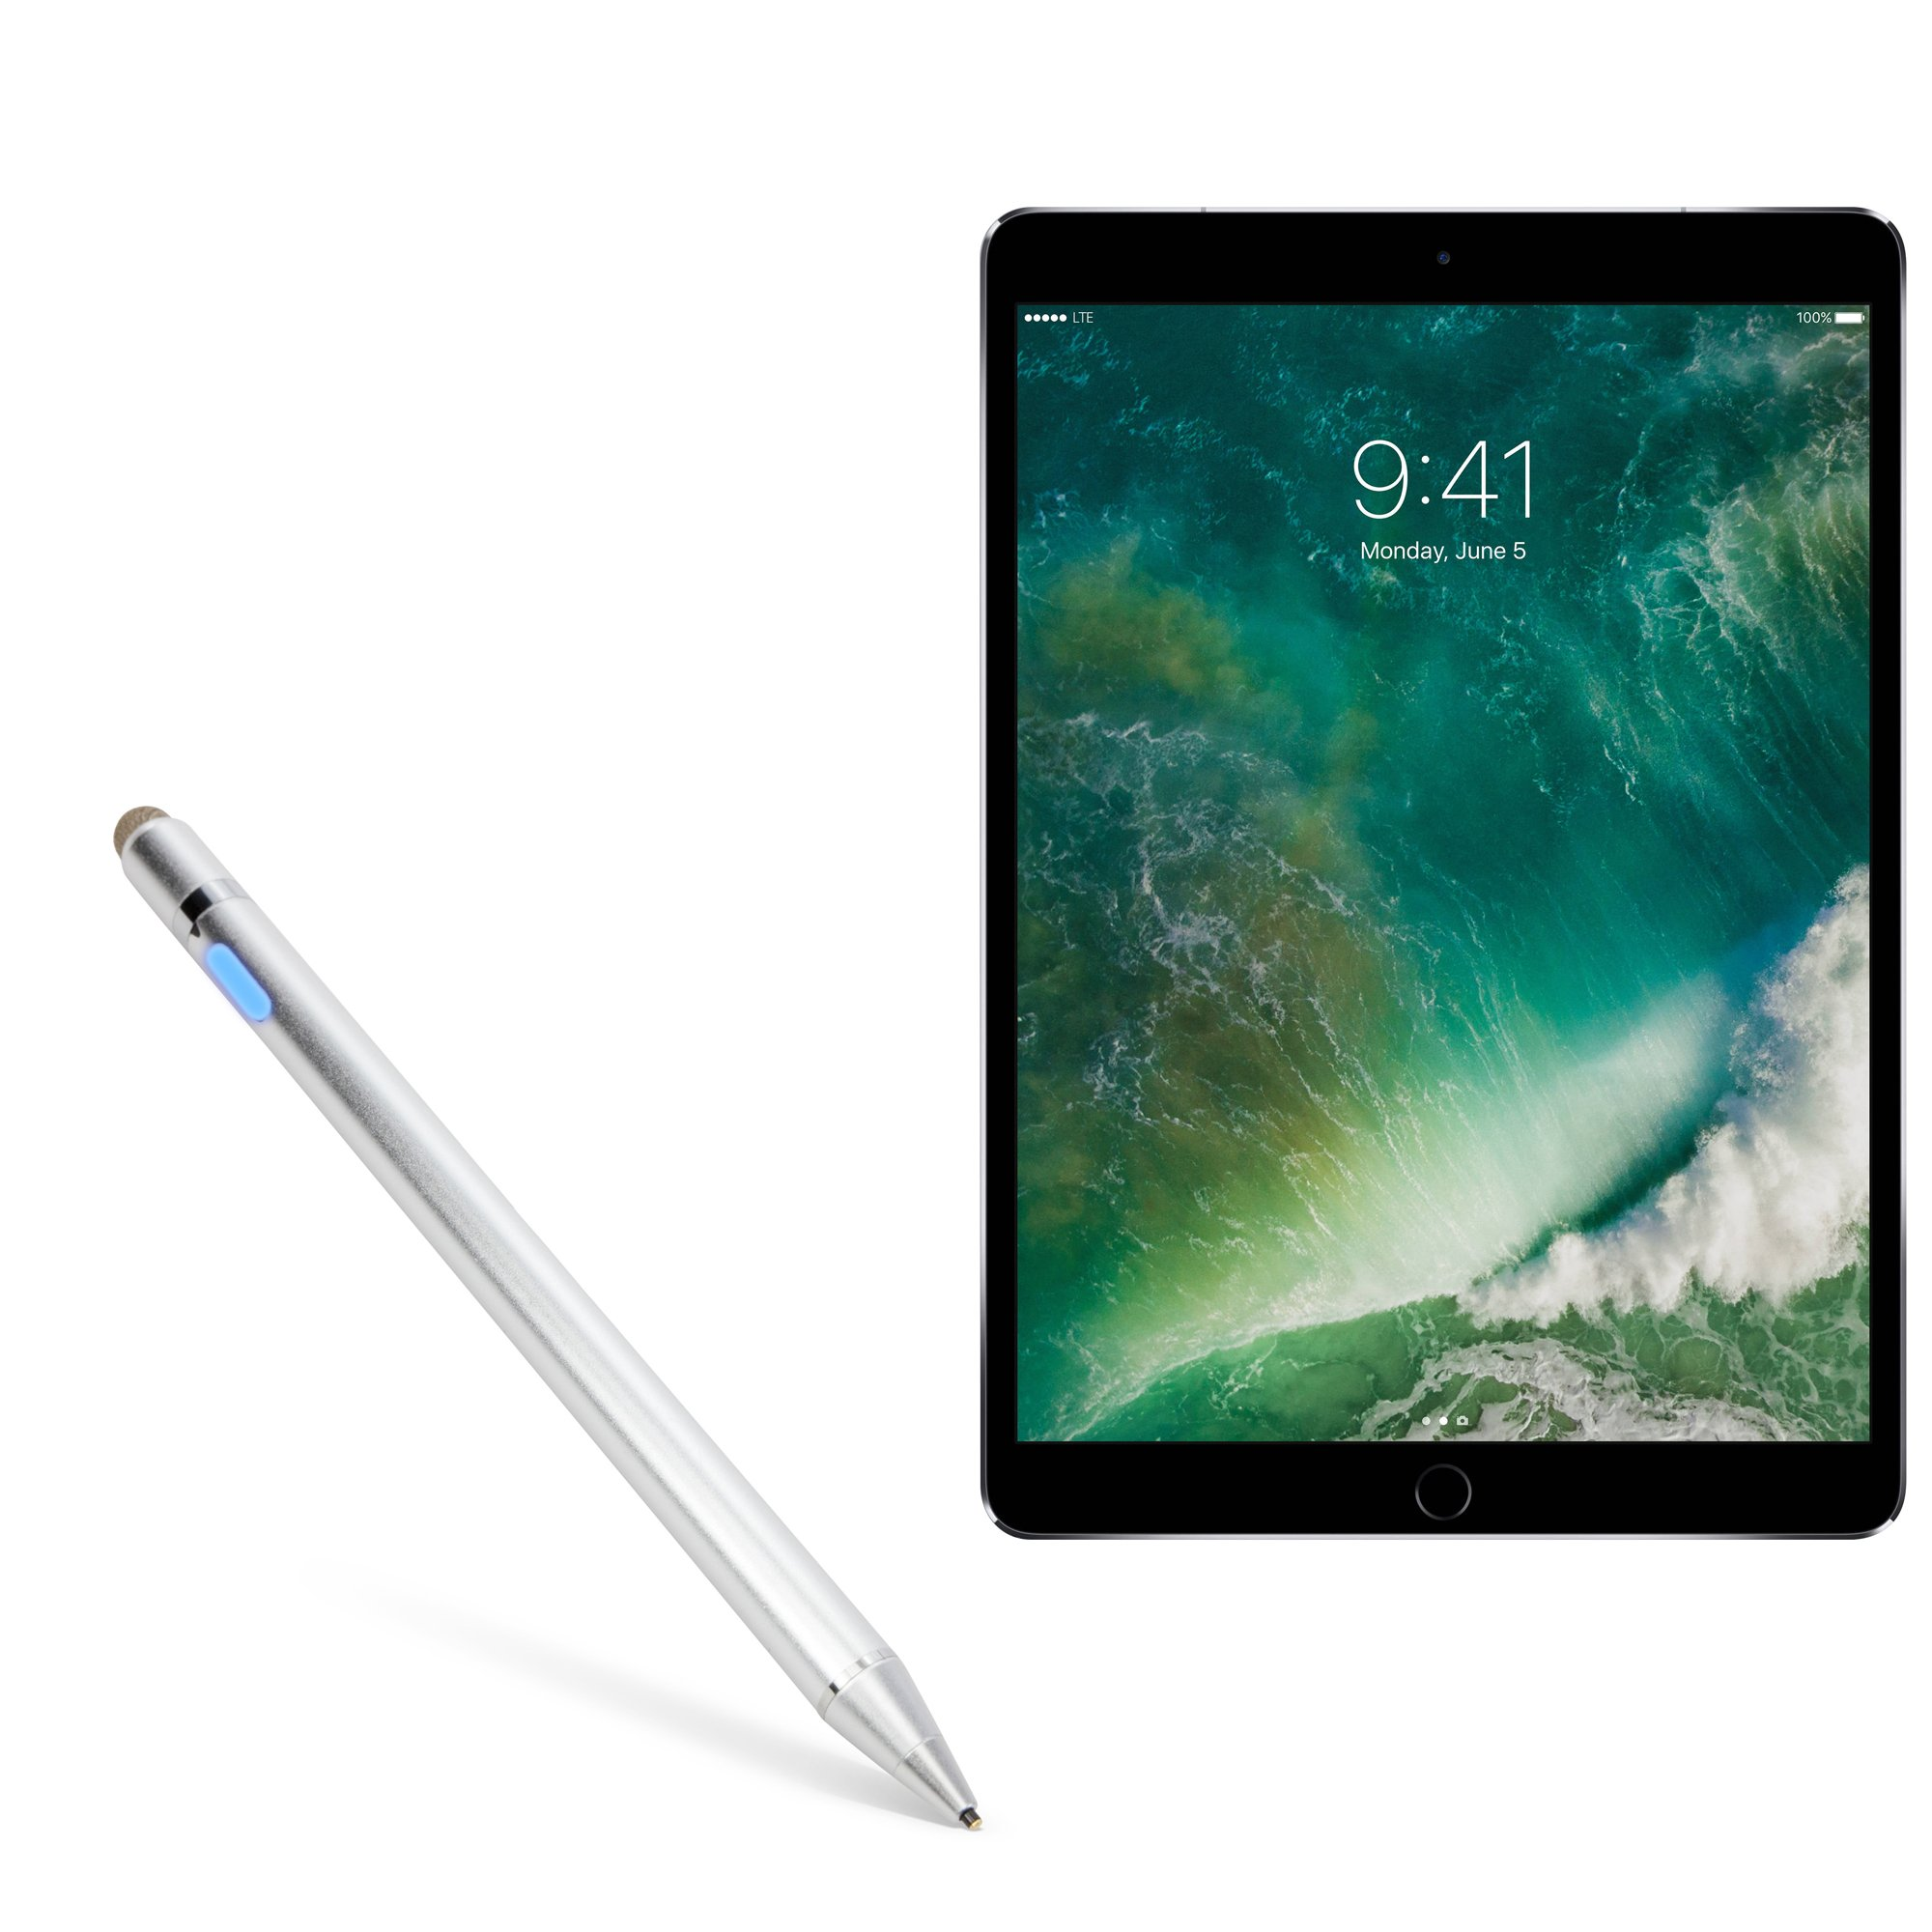 iPad Pro 10.5 (2017) Stylus Pen, BoxWave [AccuPoint Active Stylus] Electronic Stylus with Ultra Fine Tip for Apple iPad Pro 10.5 (2017) - Metallic Silver by BoxWave (Image #1)